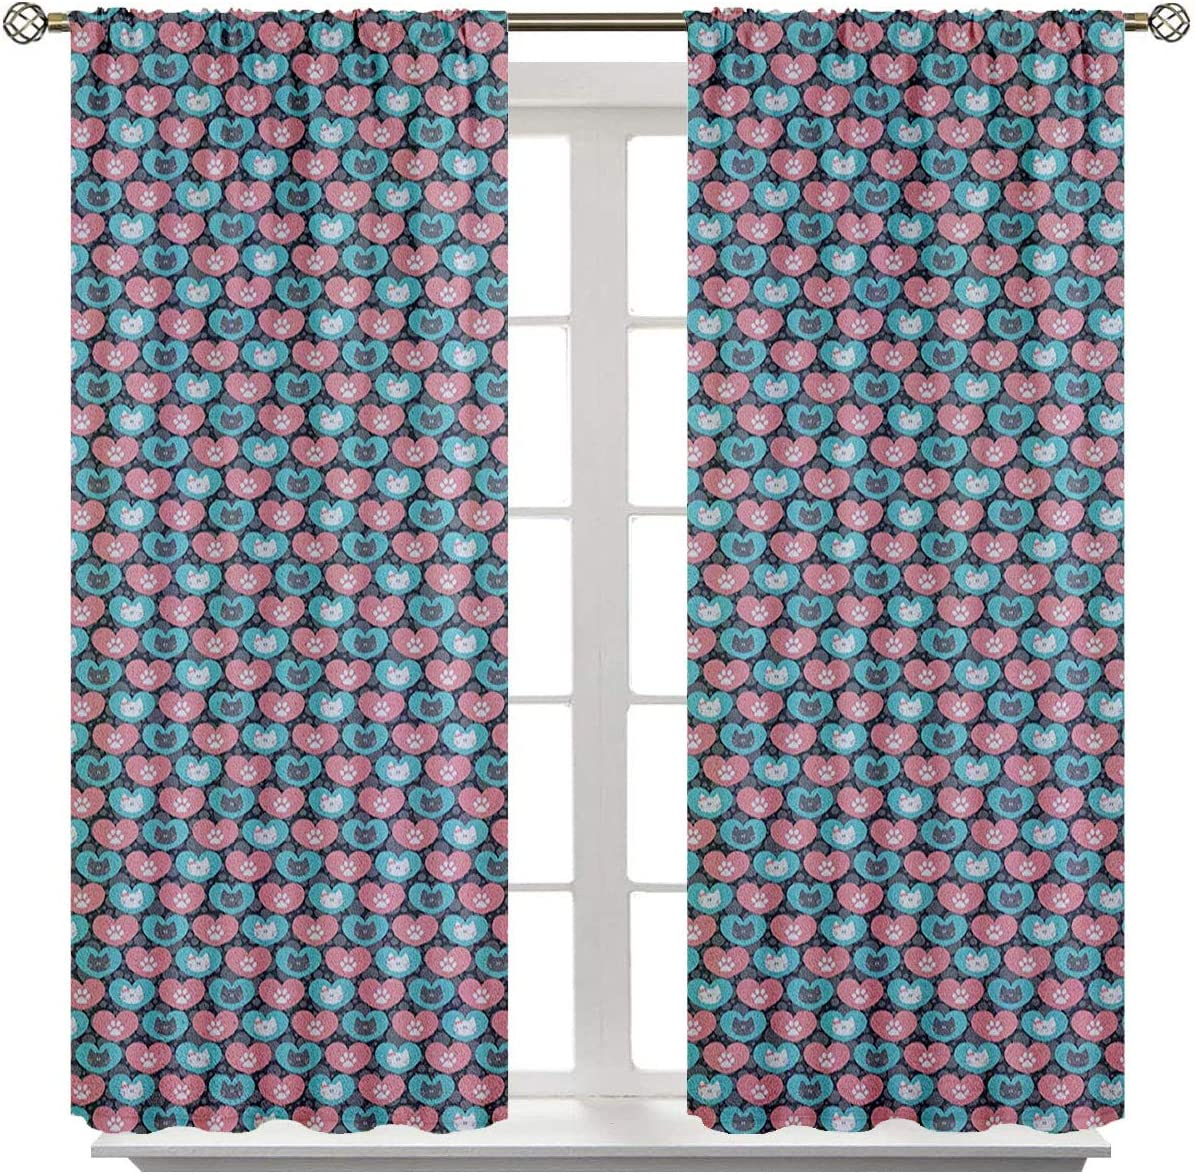 June Gissing Kids Curtains Cute Cat Portrait and Paws in Heart Figures Pets Love Animal Baby Thermal Insulated Blackout Curtains W96 x L108 Grey Pale Sea Green Pale Pink